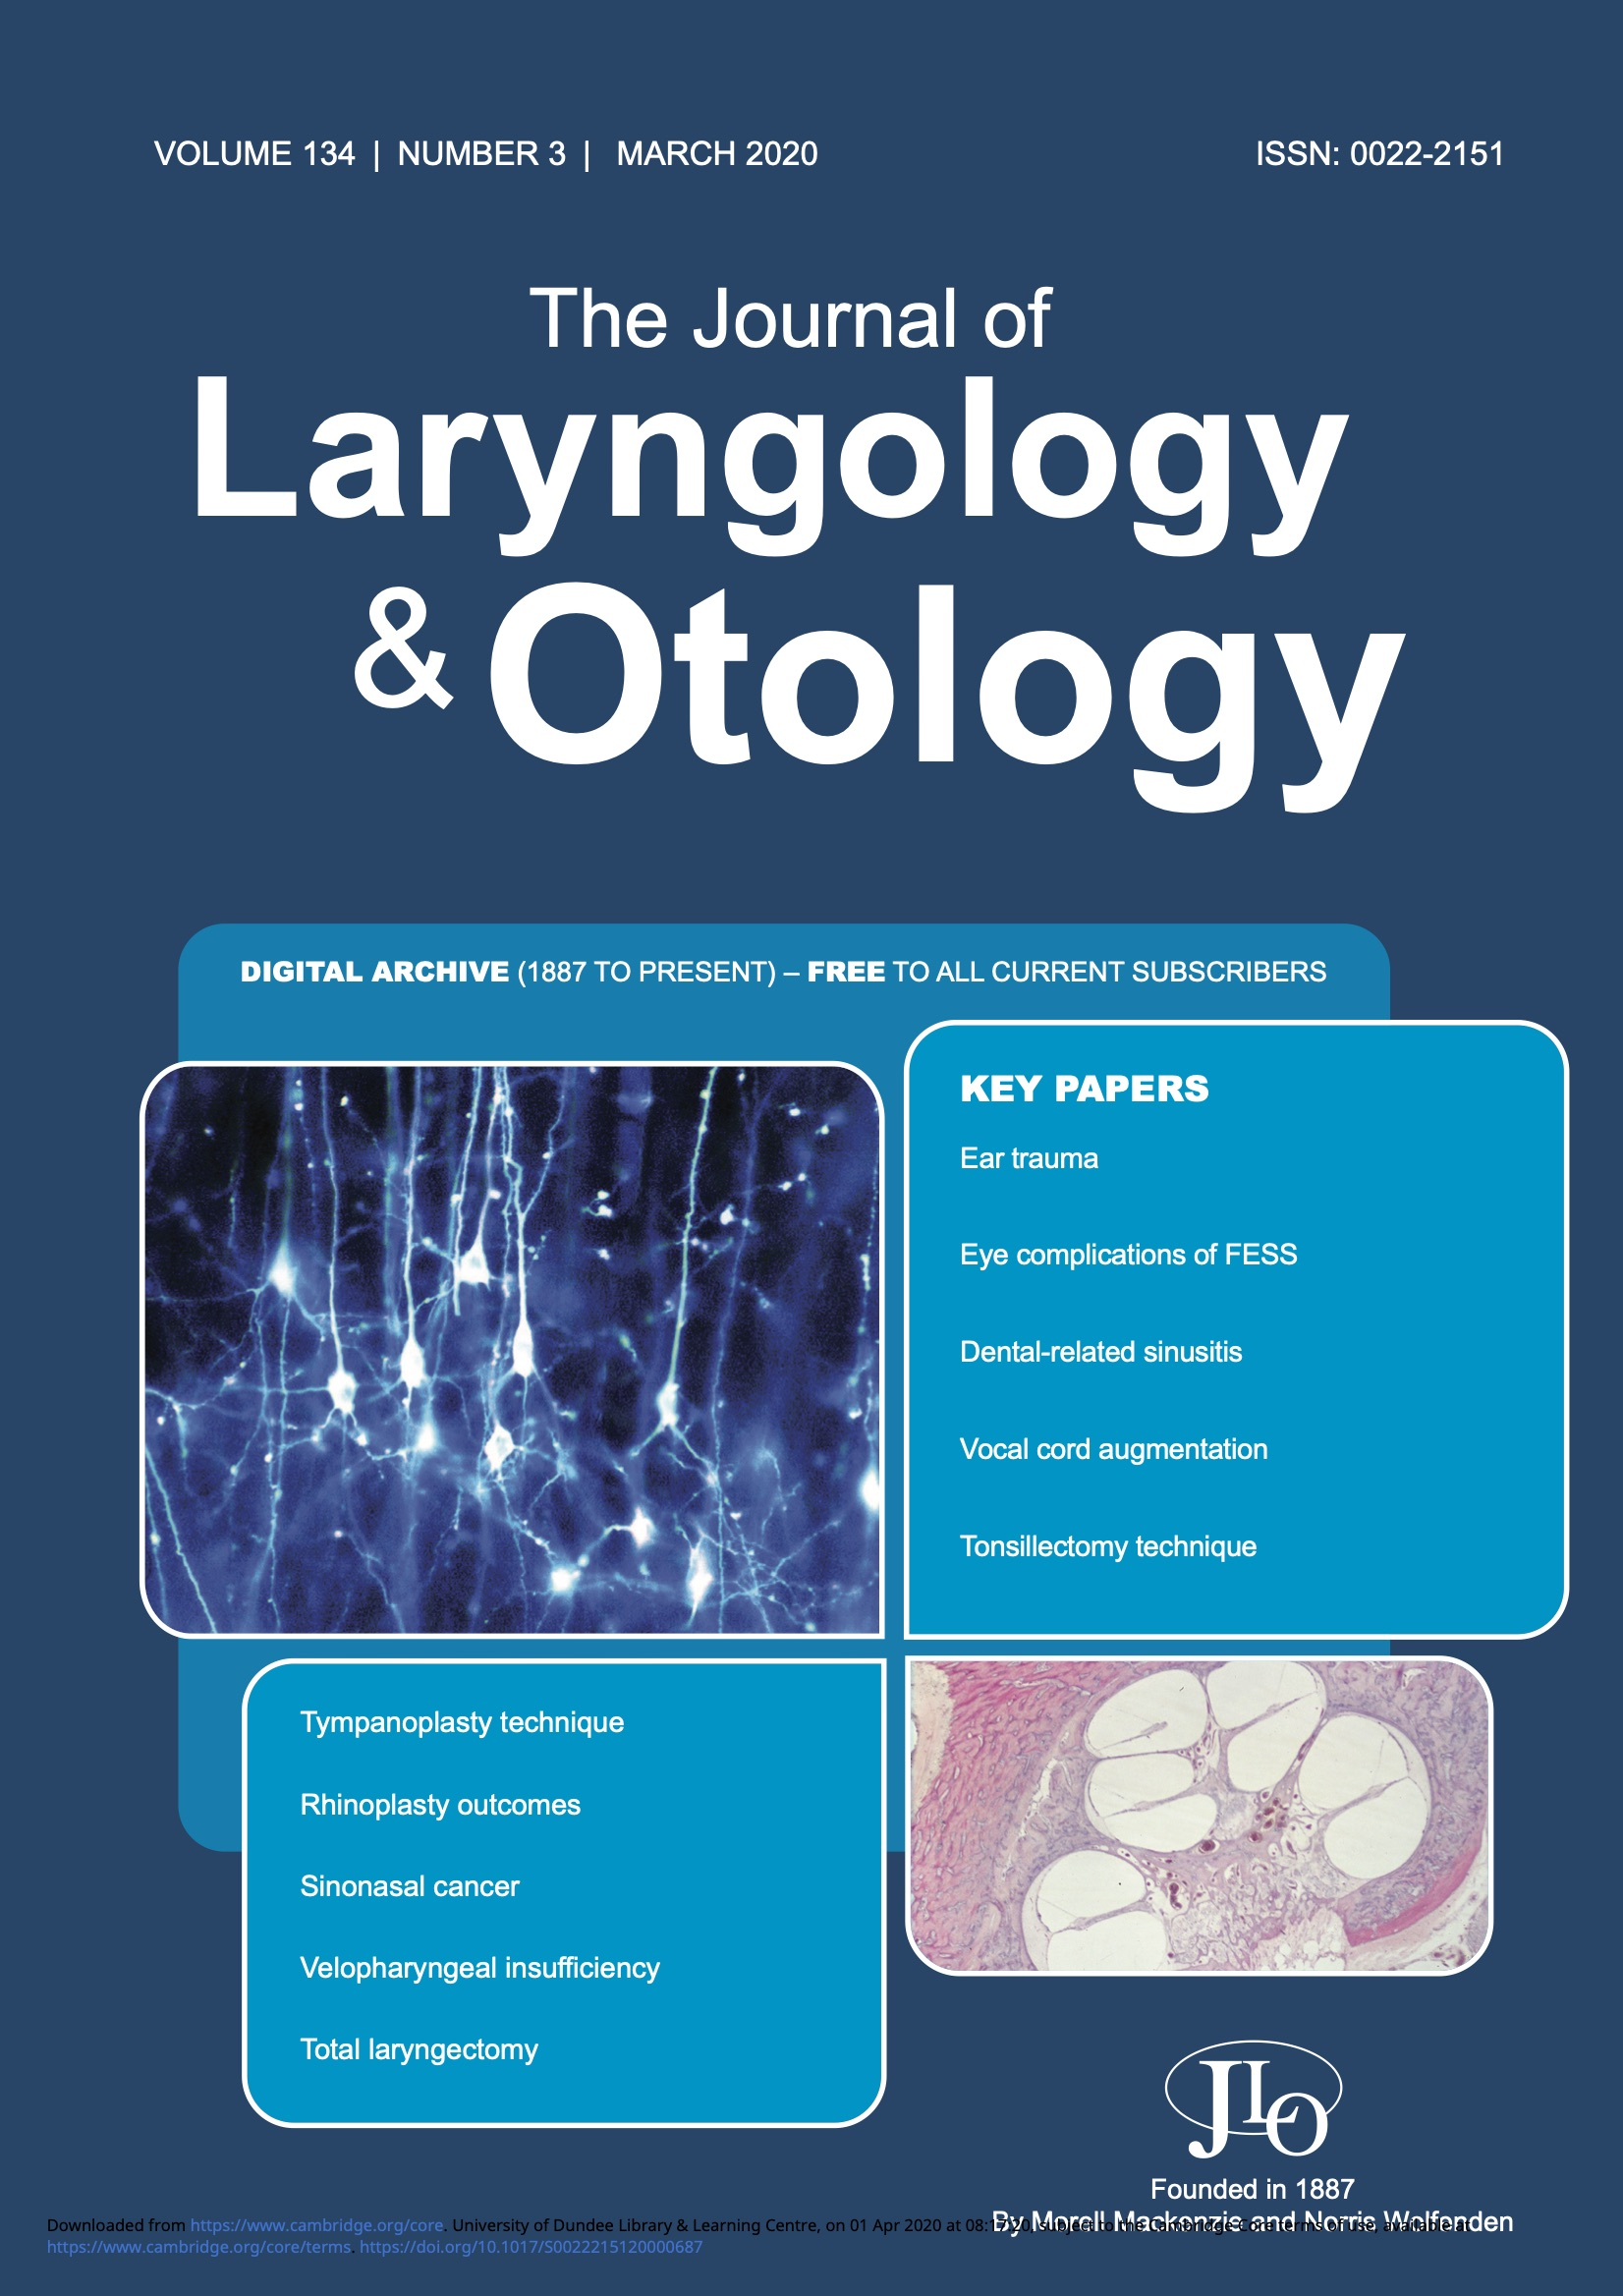 The Journal of Laryngology and Otology March 2020 Issue